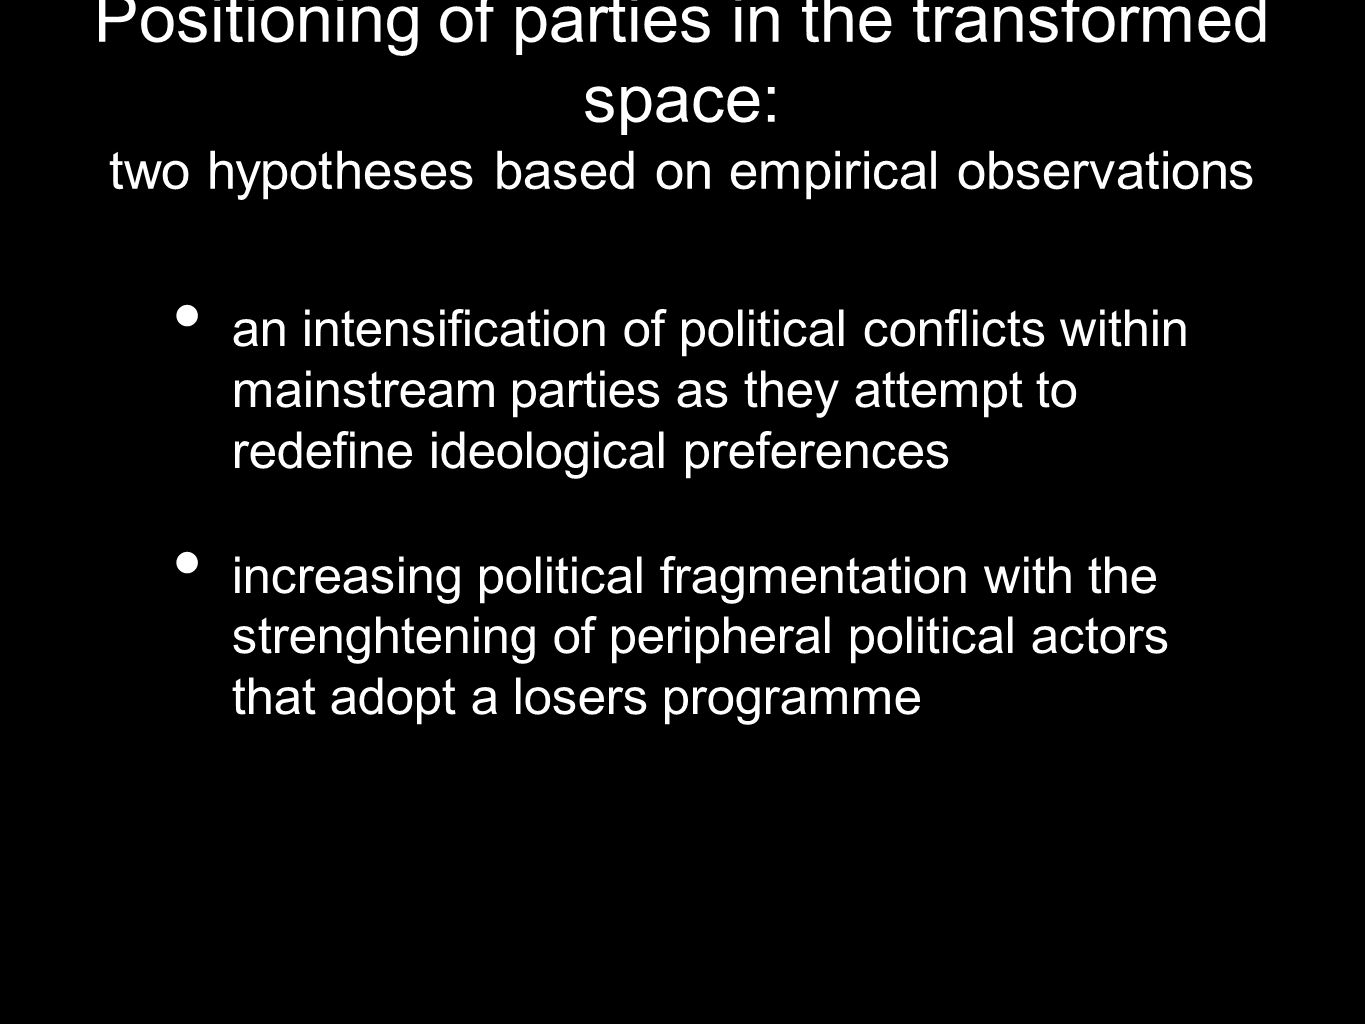 Positioning of parties in the transformed space: